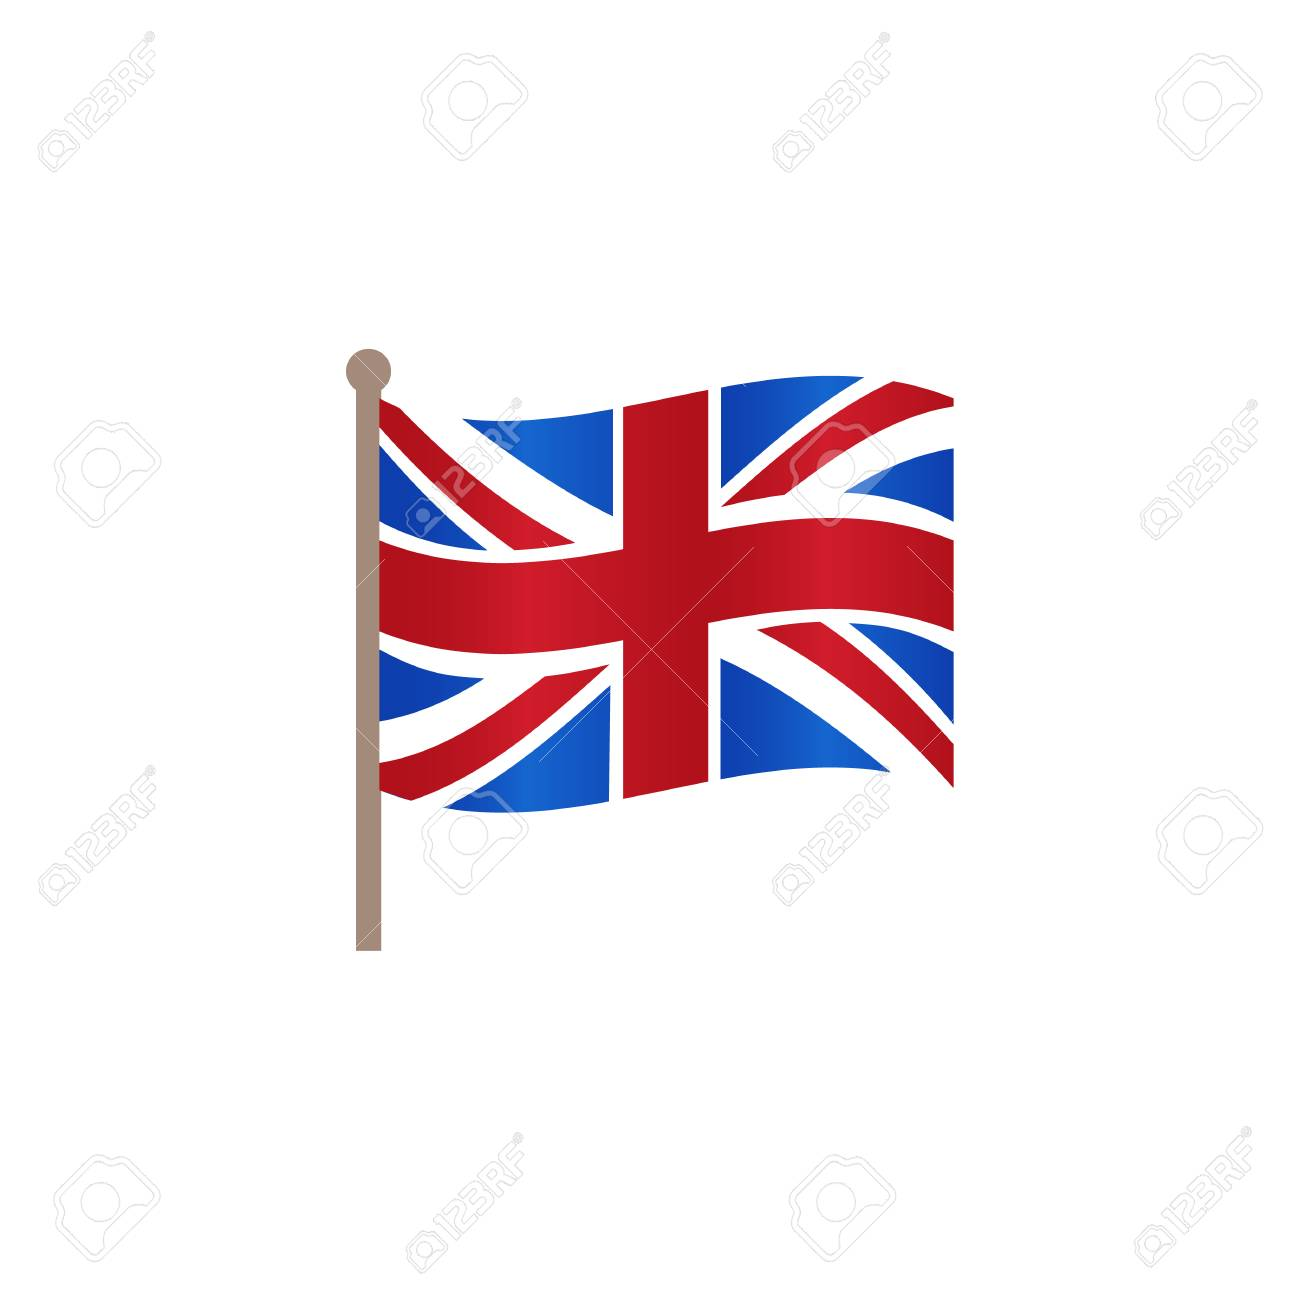 Vector flat Great Britain, United Kingdom union jack flag icon. Illustration on a white background. English national cultural state symbol for your design. - 92189677